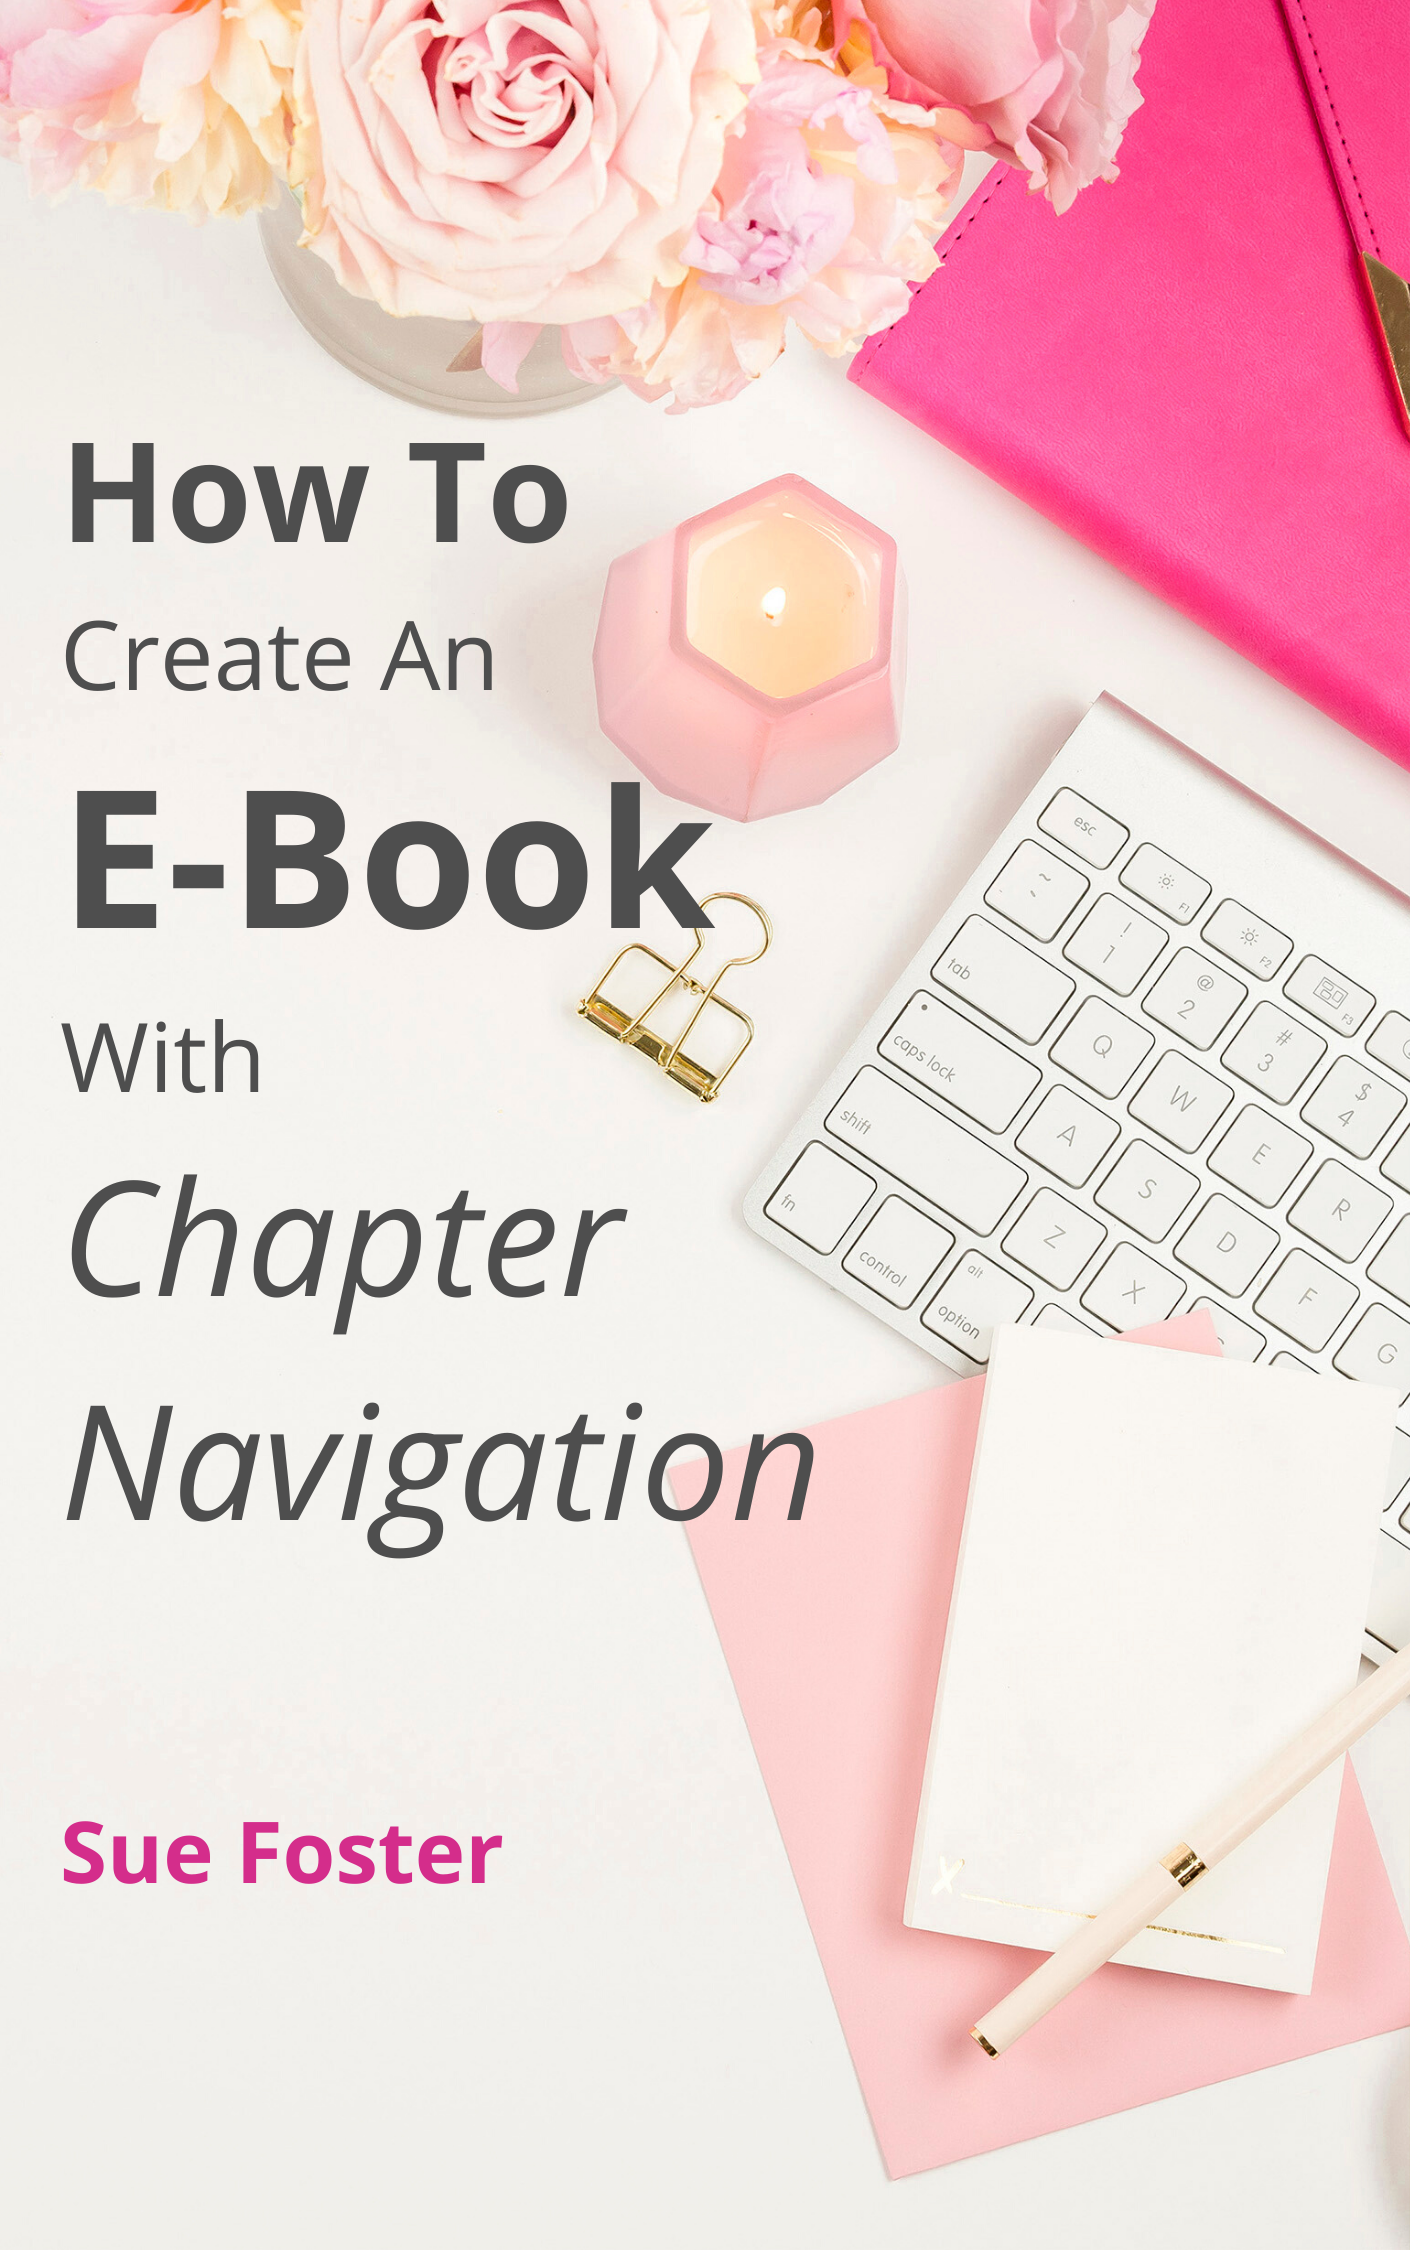 How tp create am e-book with chapter navigation